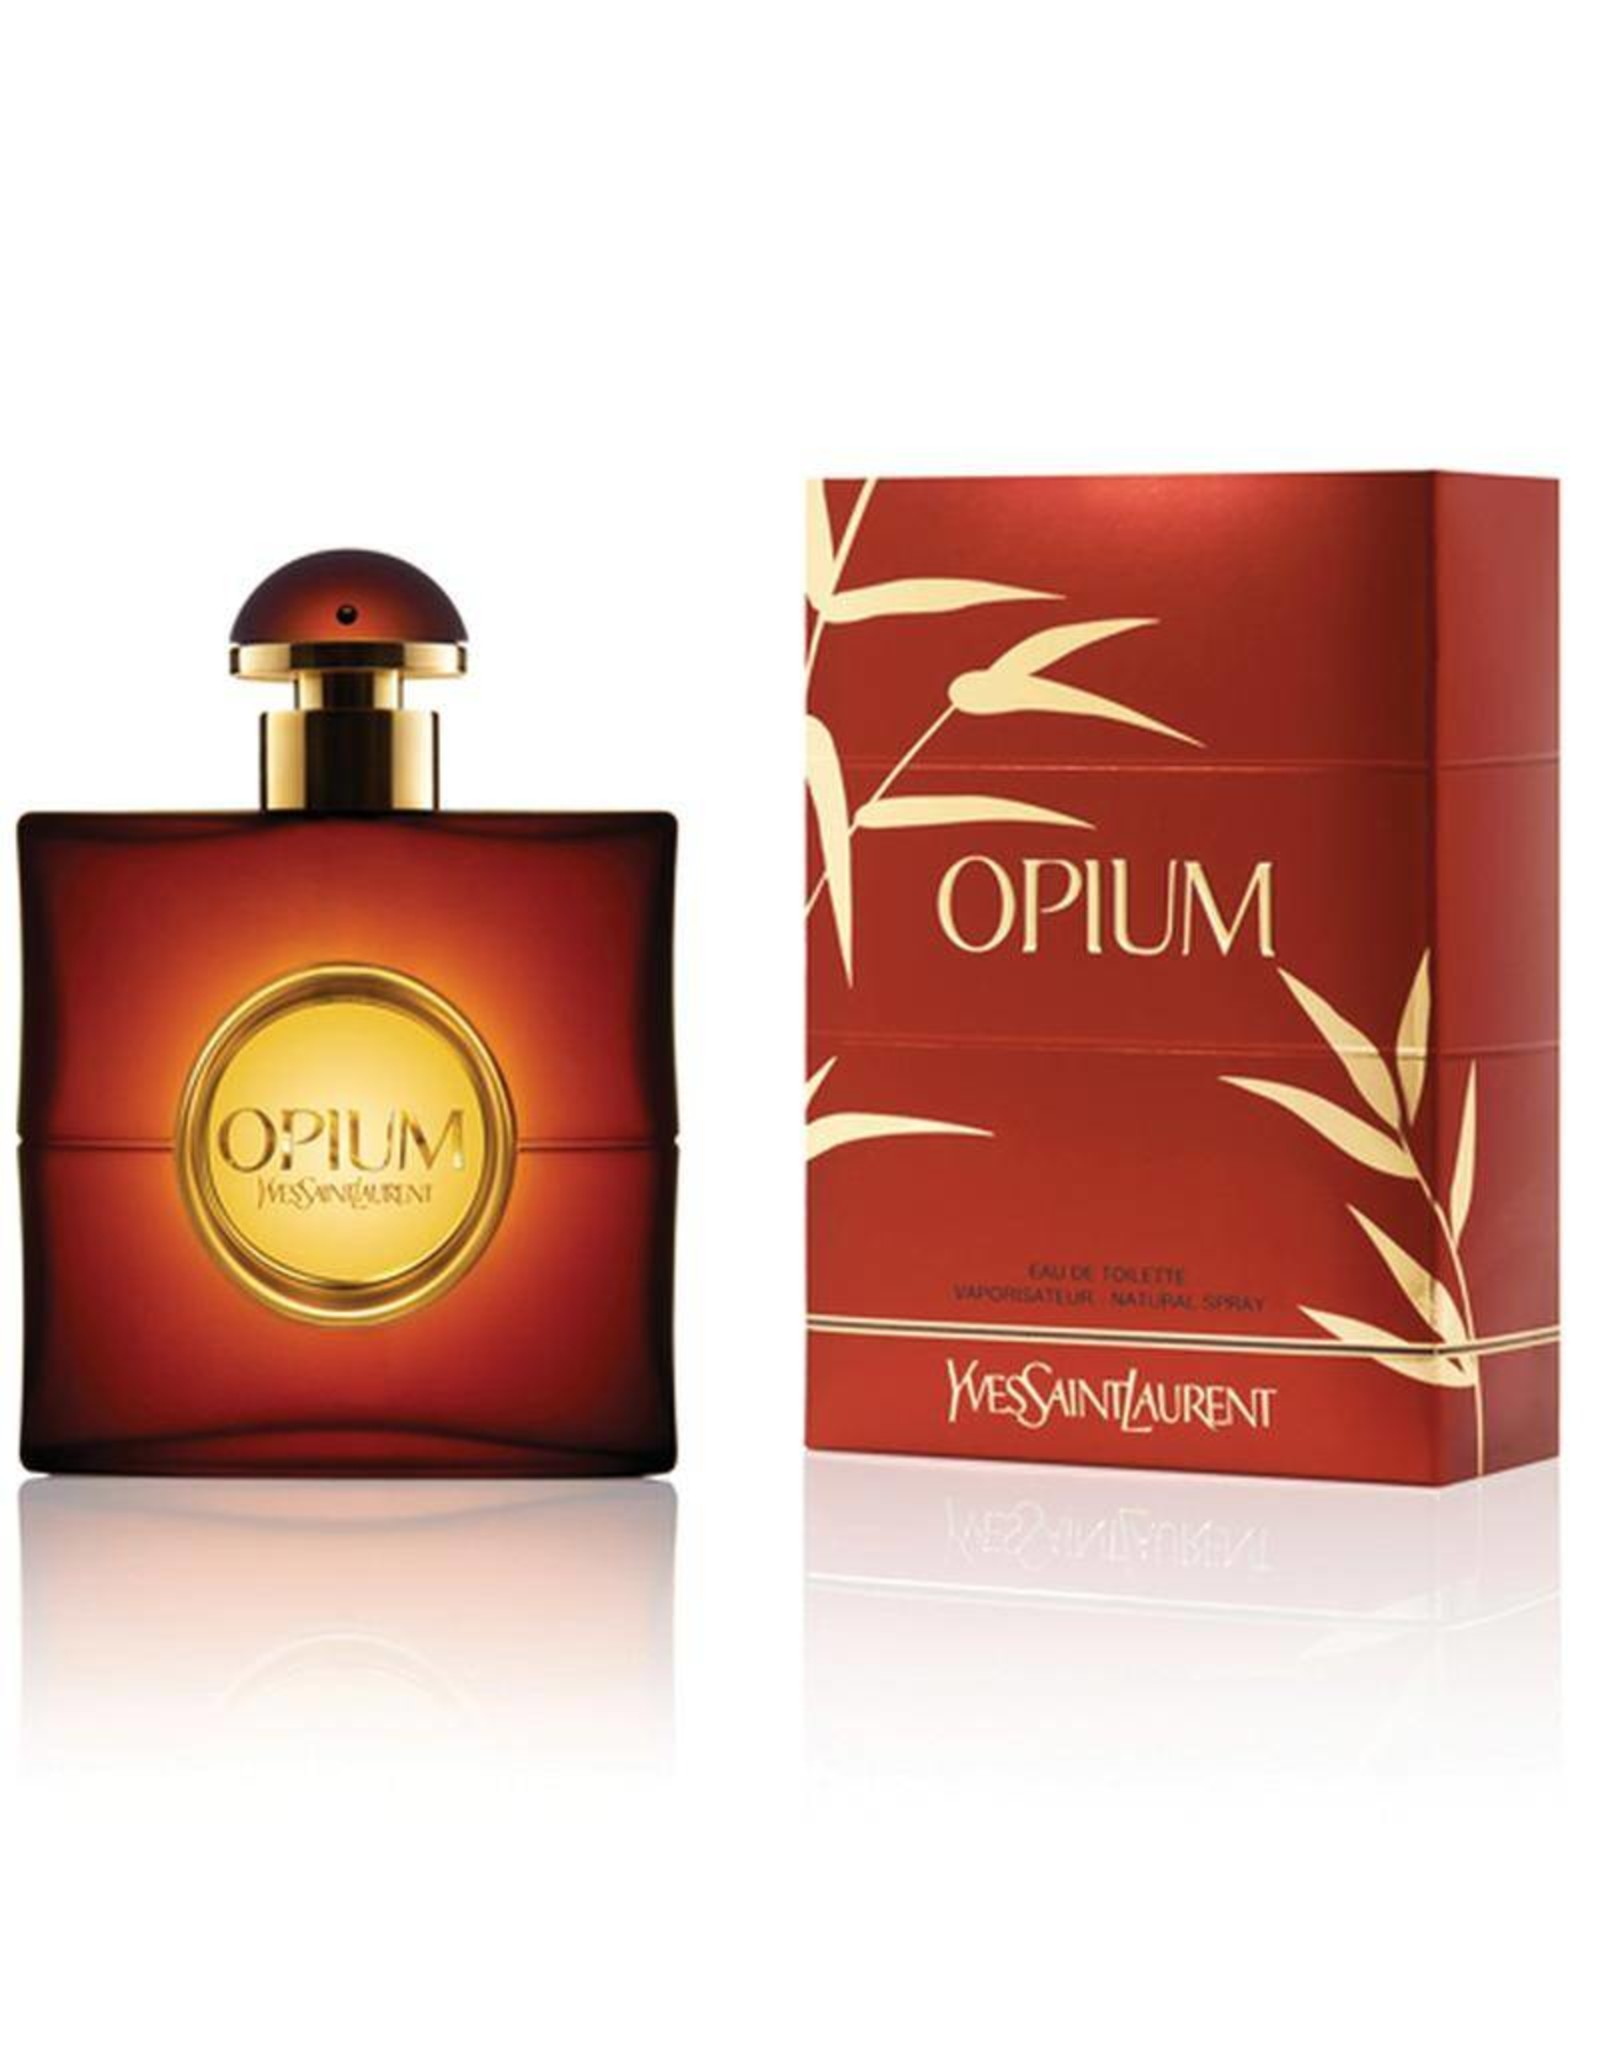 YVES SAINT LAURENT YVES SAINT LAURENT OPIUM (Women) (YSL)